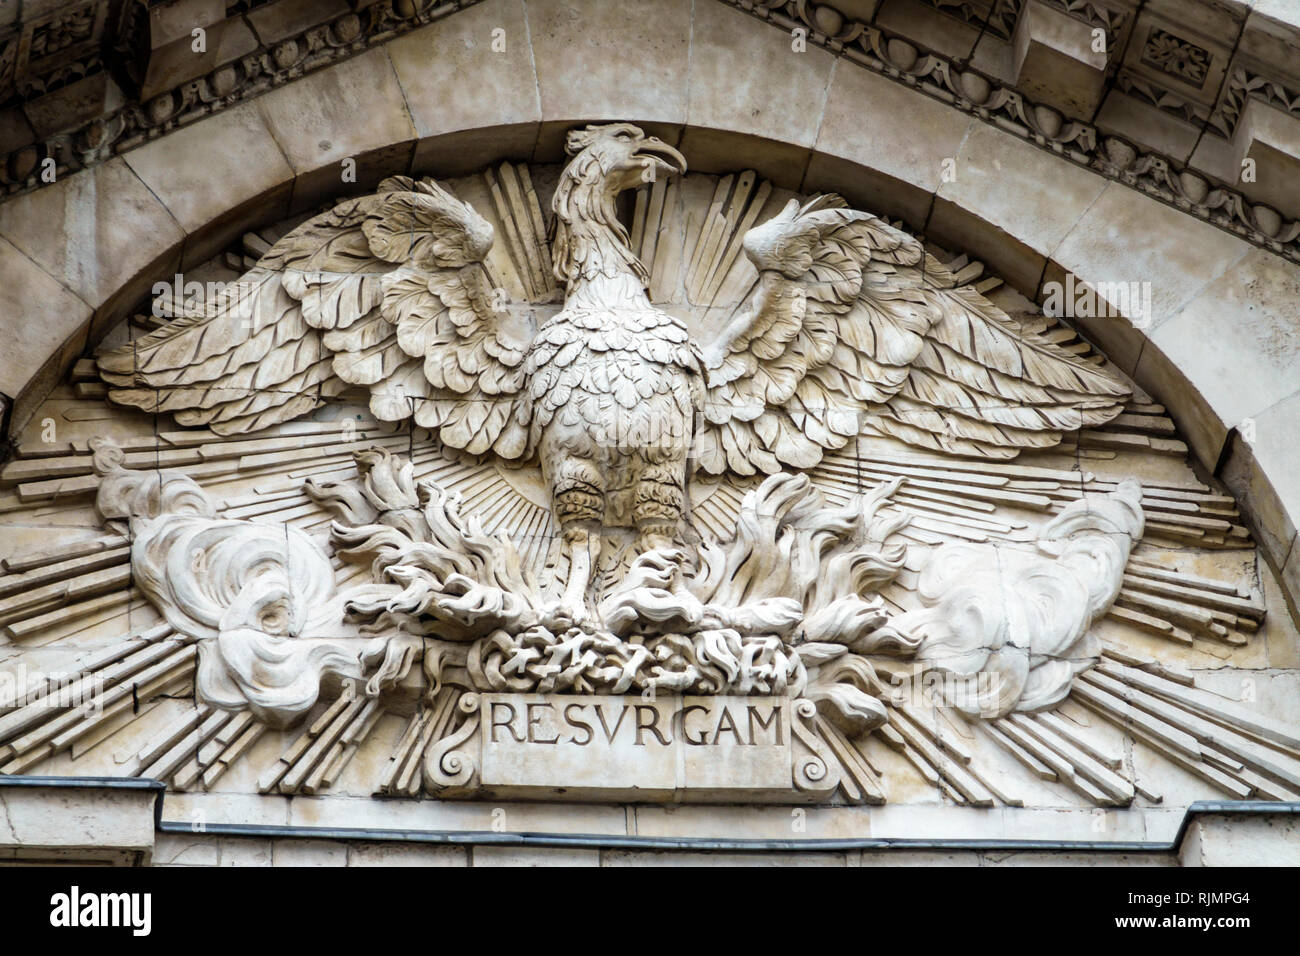 United Kingdom Great Britain England City of London Paternoster architectural ornamental sculpture phoenix statue mythology Latin word Resurgam reborn - Stock Image